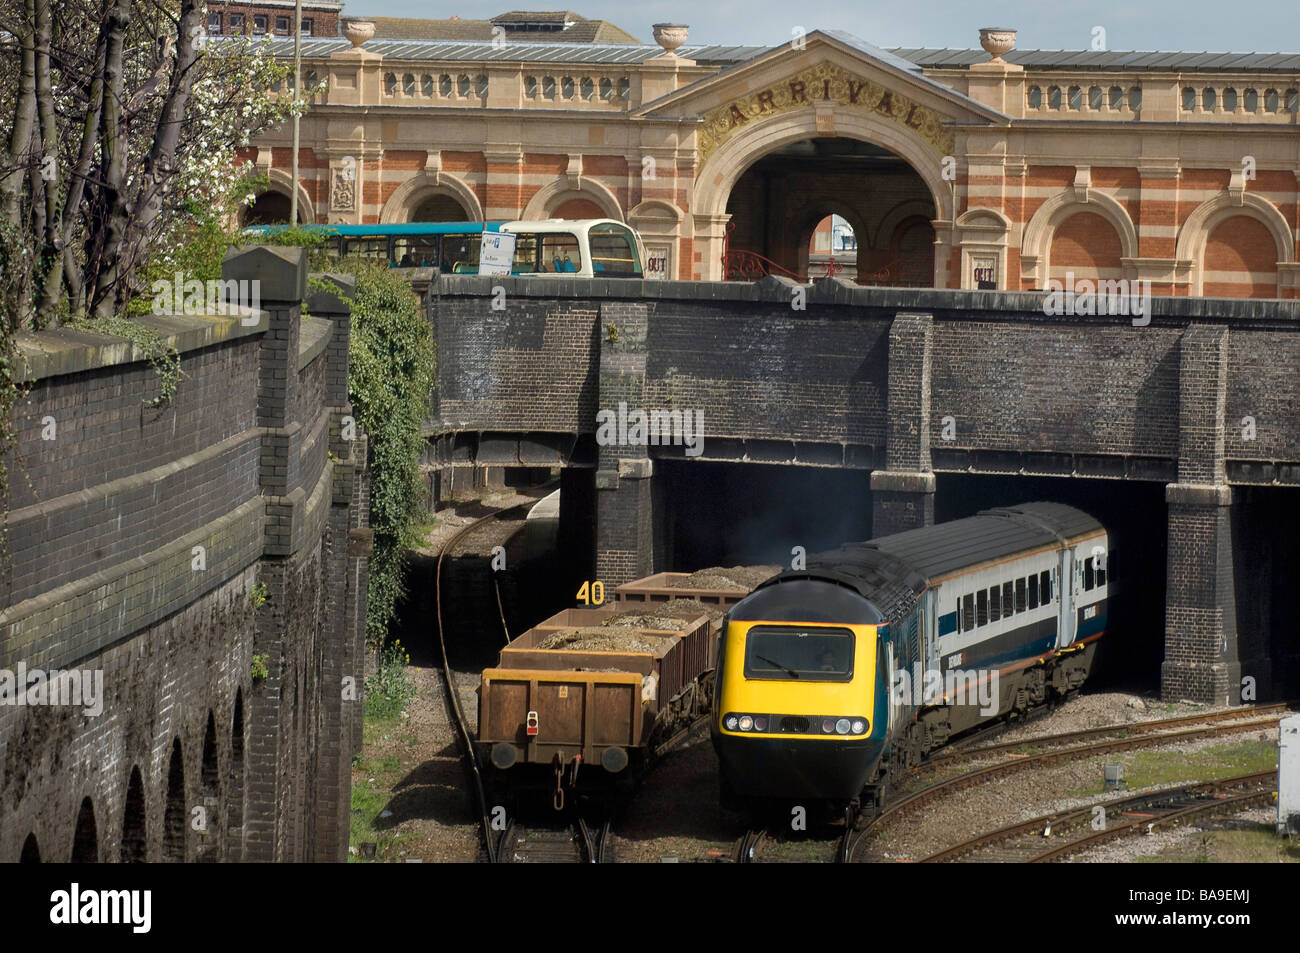 A freight train going under a bridge as a passenger train emerges and a bus is seen on the road above - Stock Image